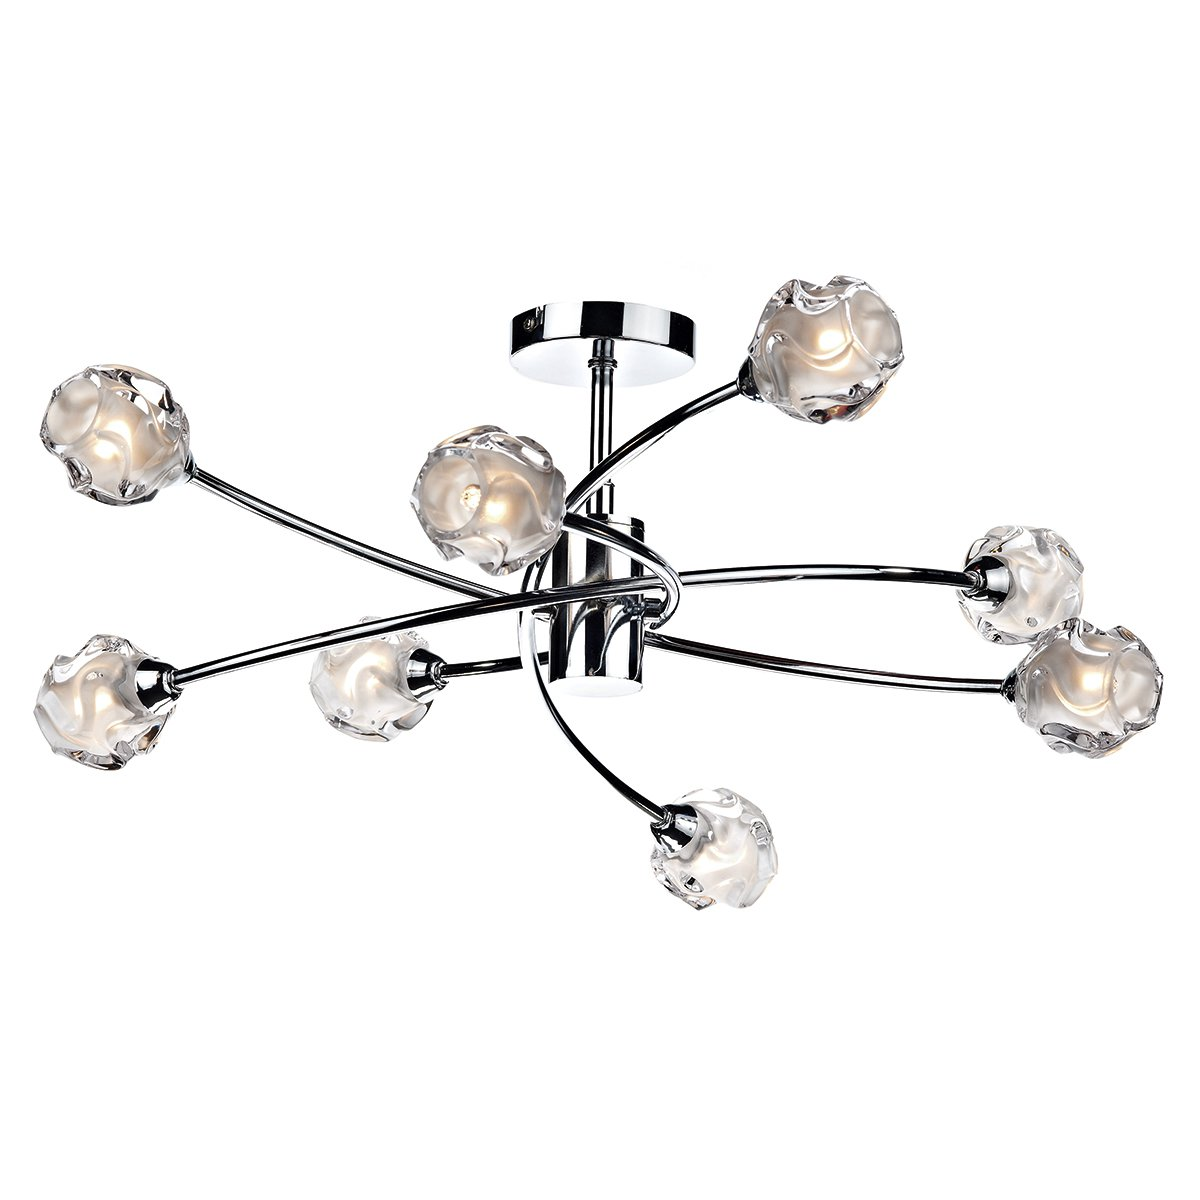 dar seattle 8 light semi flush polished chrome at barnitts online store  uk